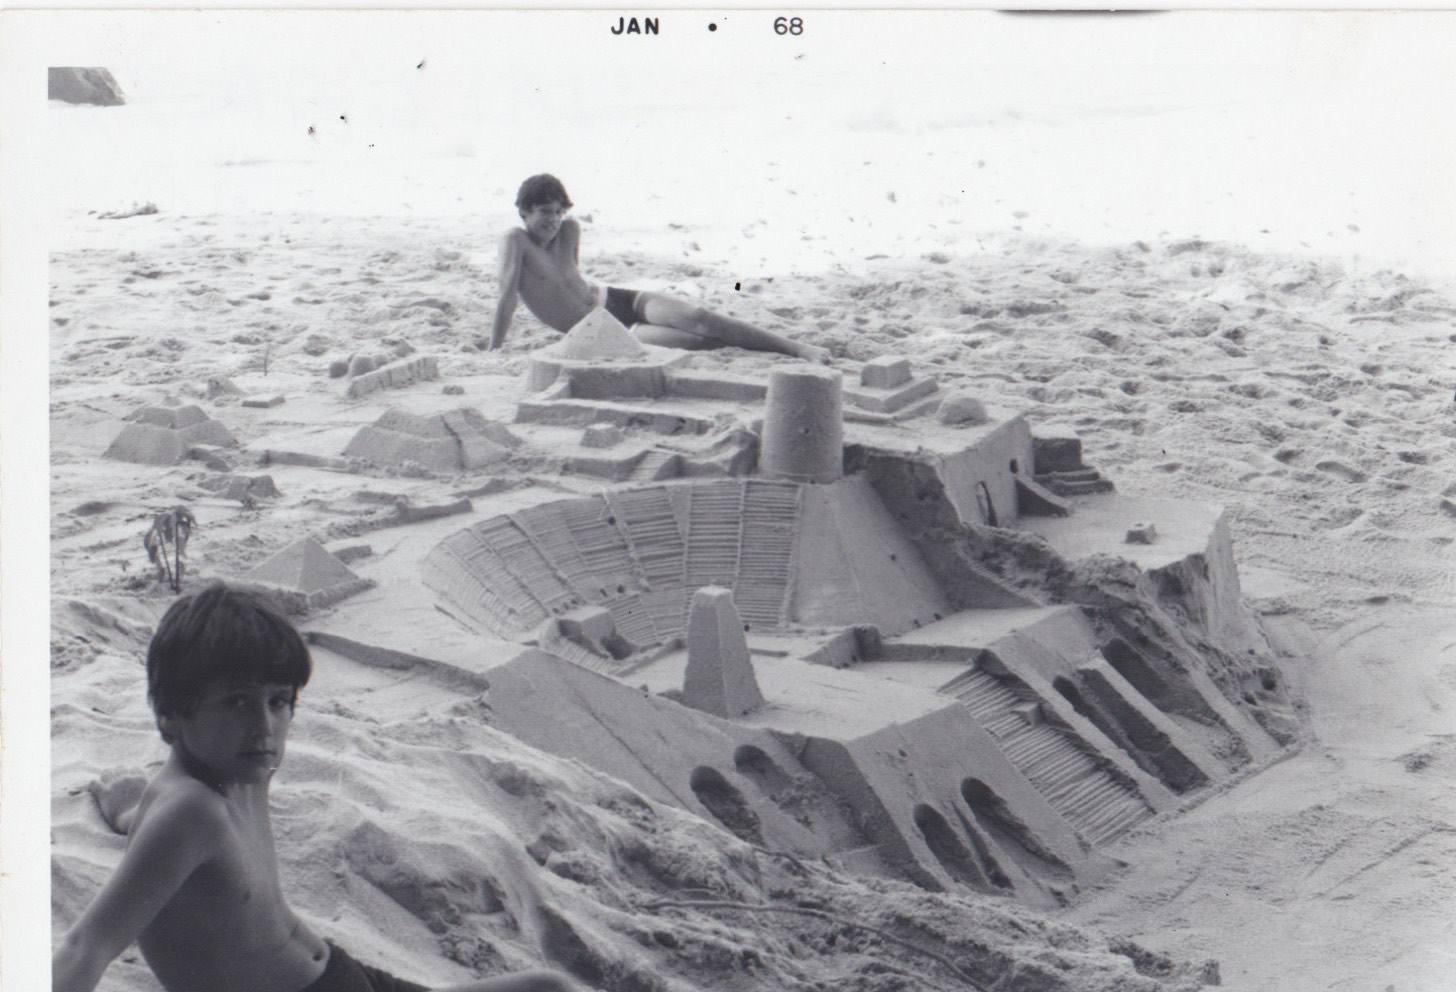 Caio and Bruno Fonseca with Gonzalo Fonseca Sand Sculpture, Mexico, 1968.jpg